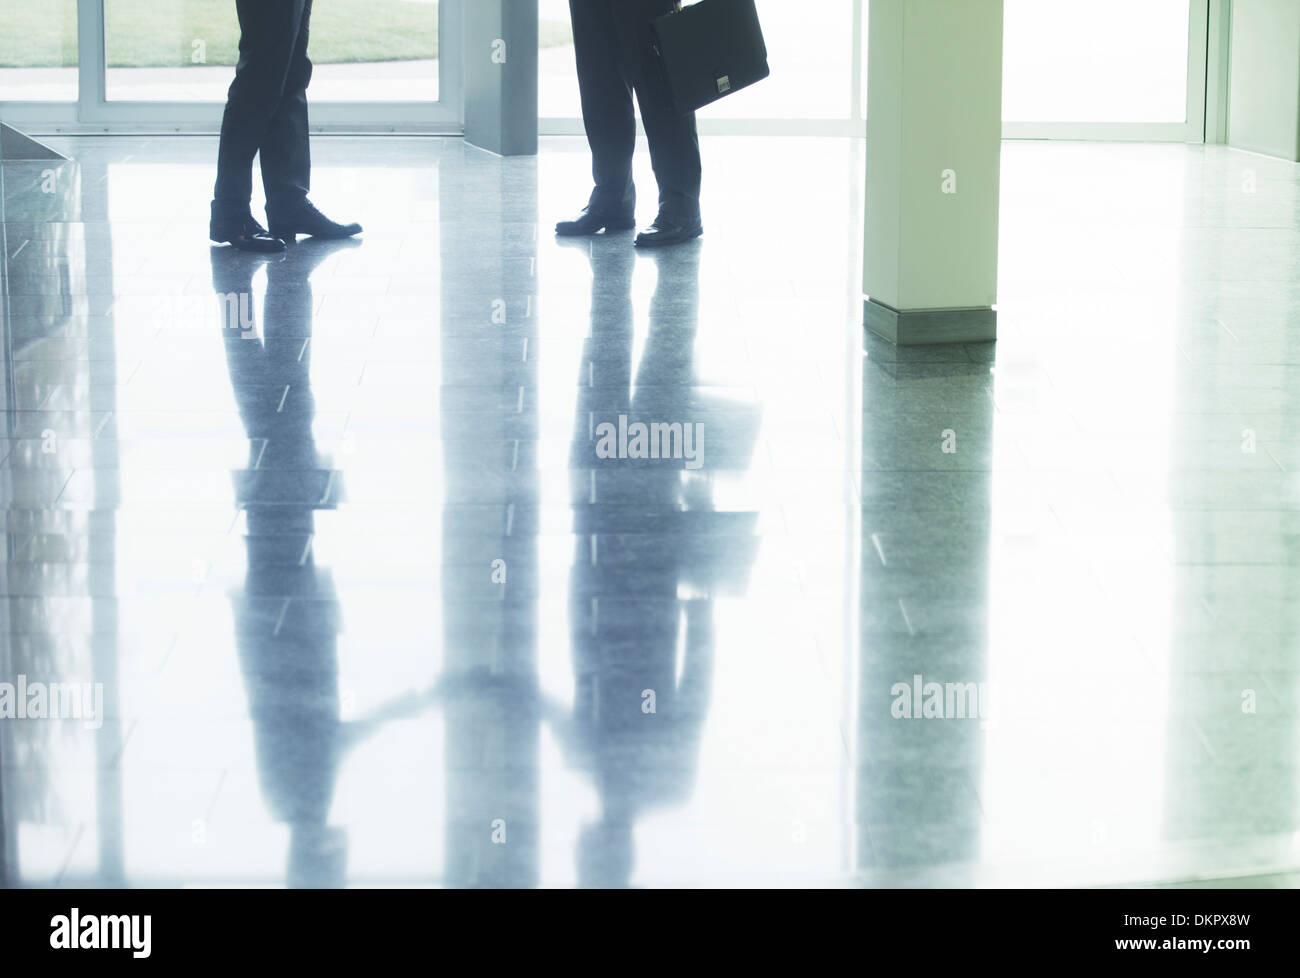 Reflection of businessmen shaking hands in office lobby - Stock Image